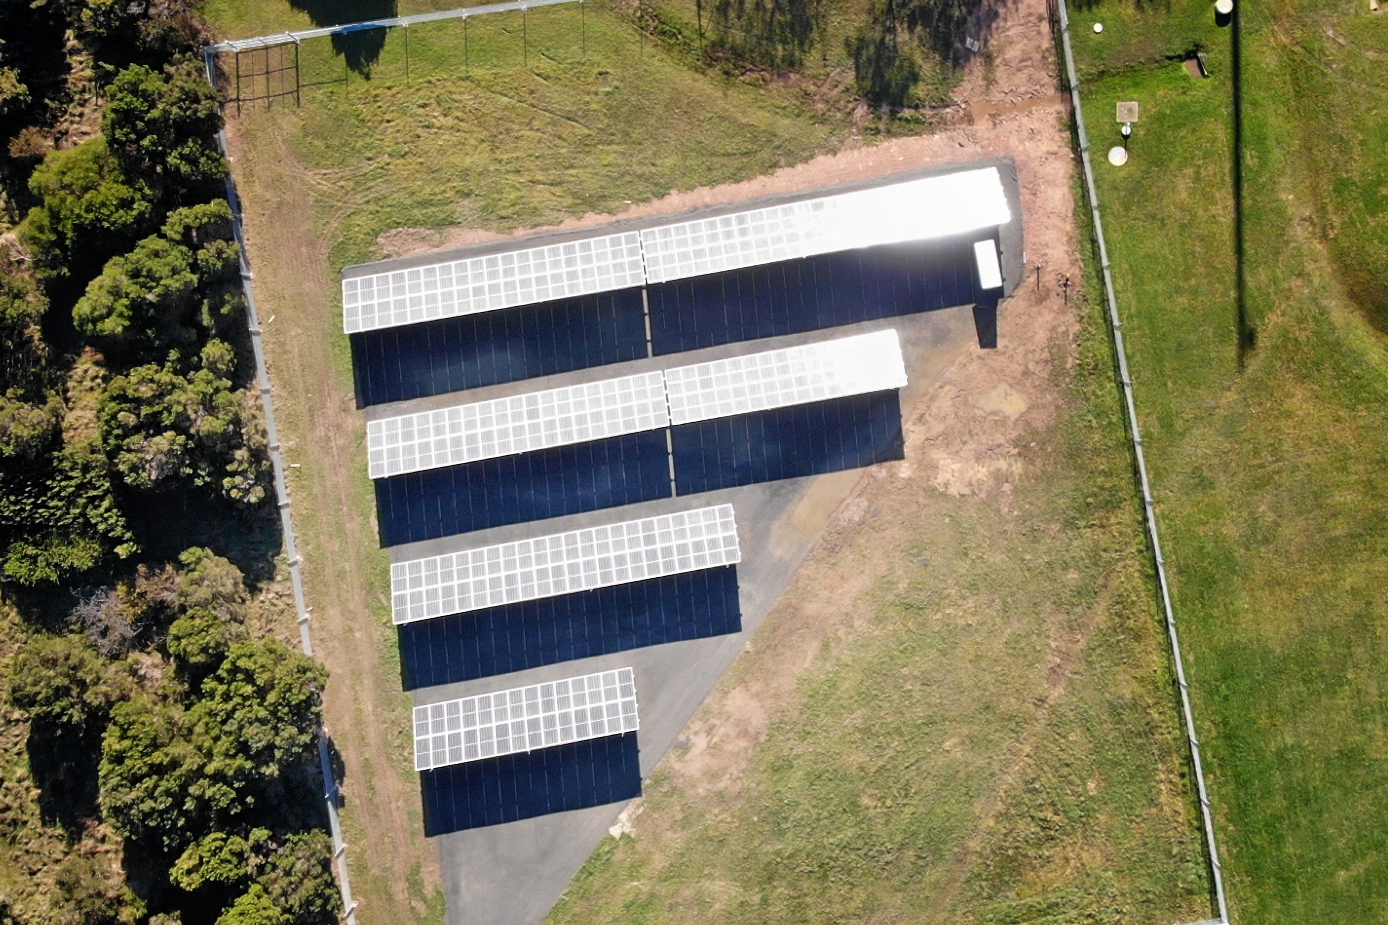 Static vs tracking solar ground mount systems